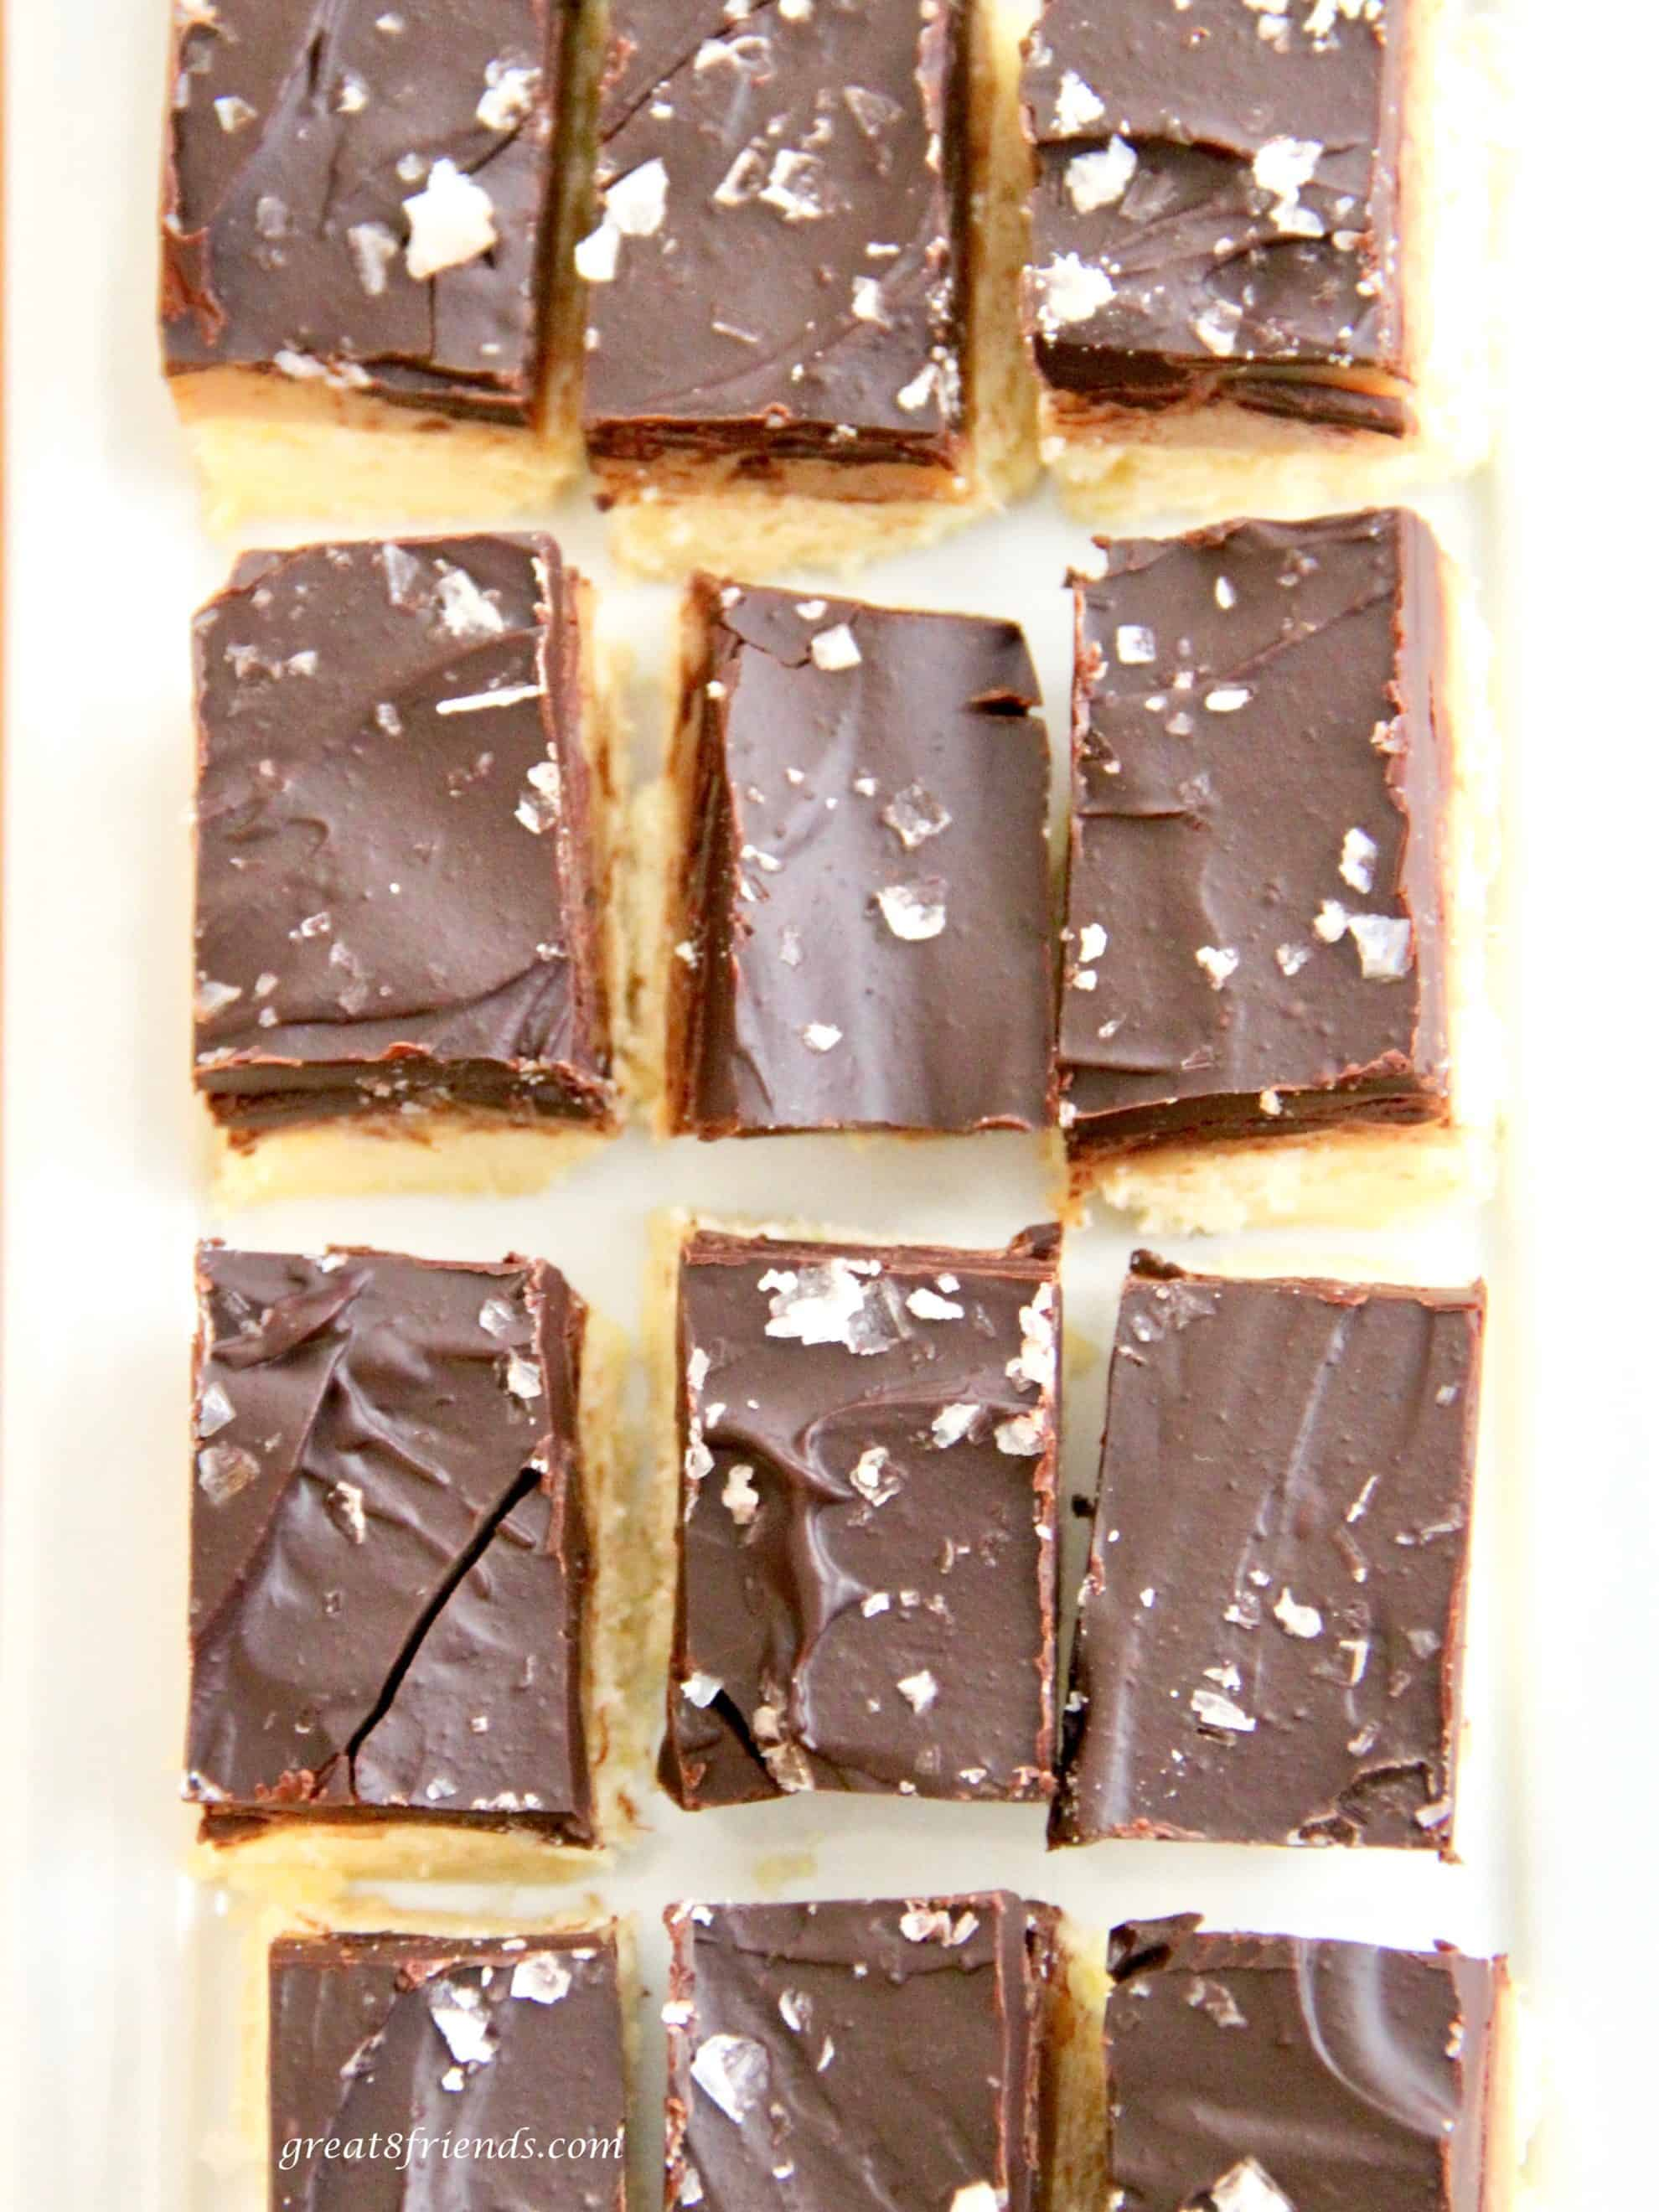 Caramel Chocolate Shortbread bars with Maldon j Sea Salt Flakes